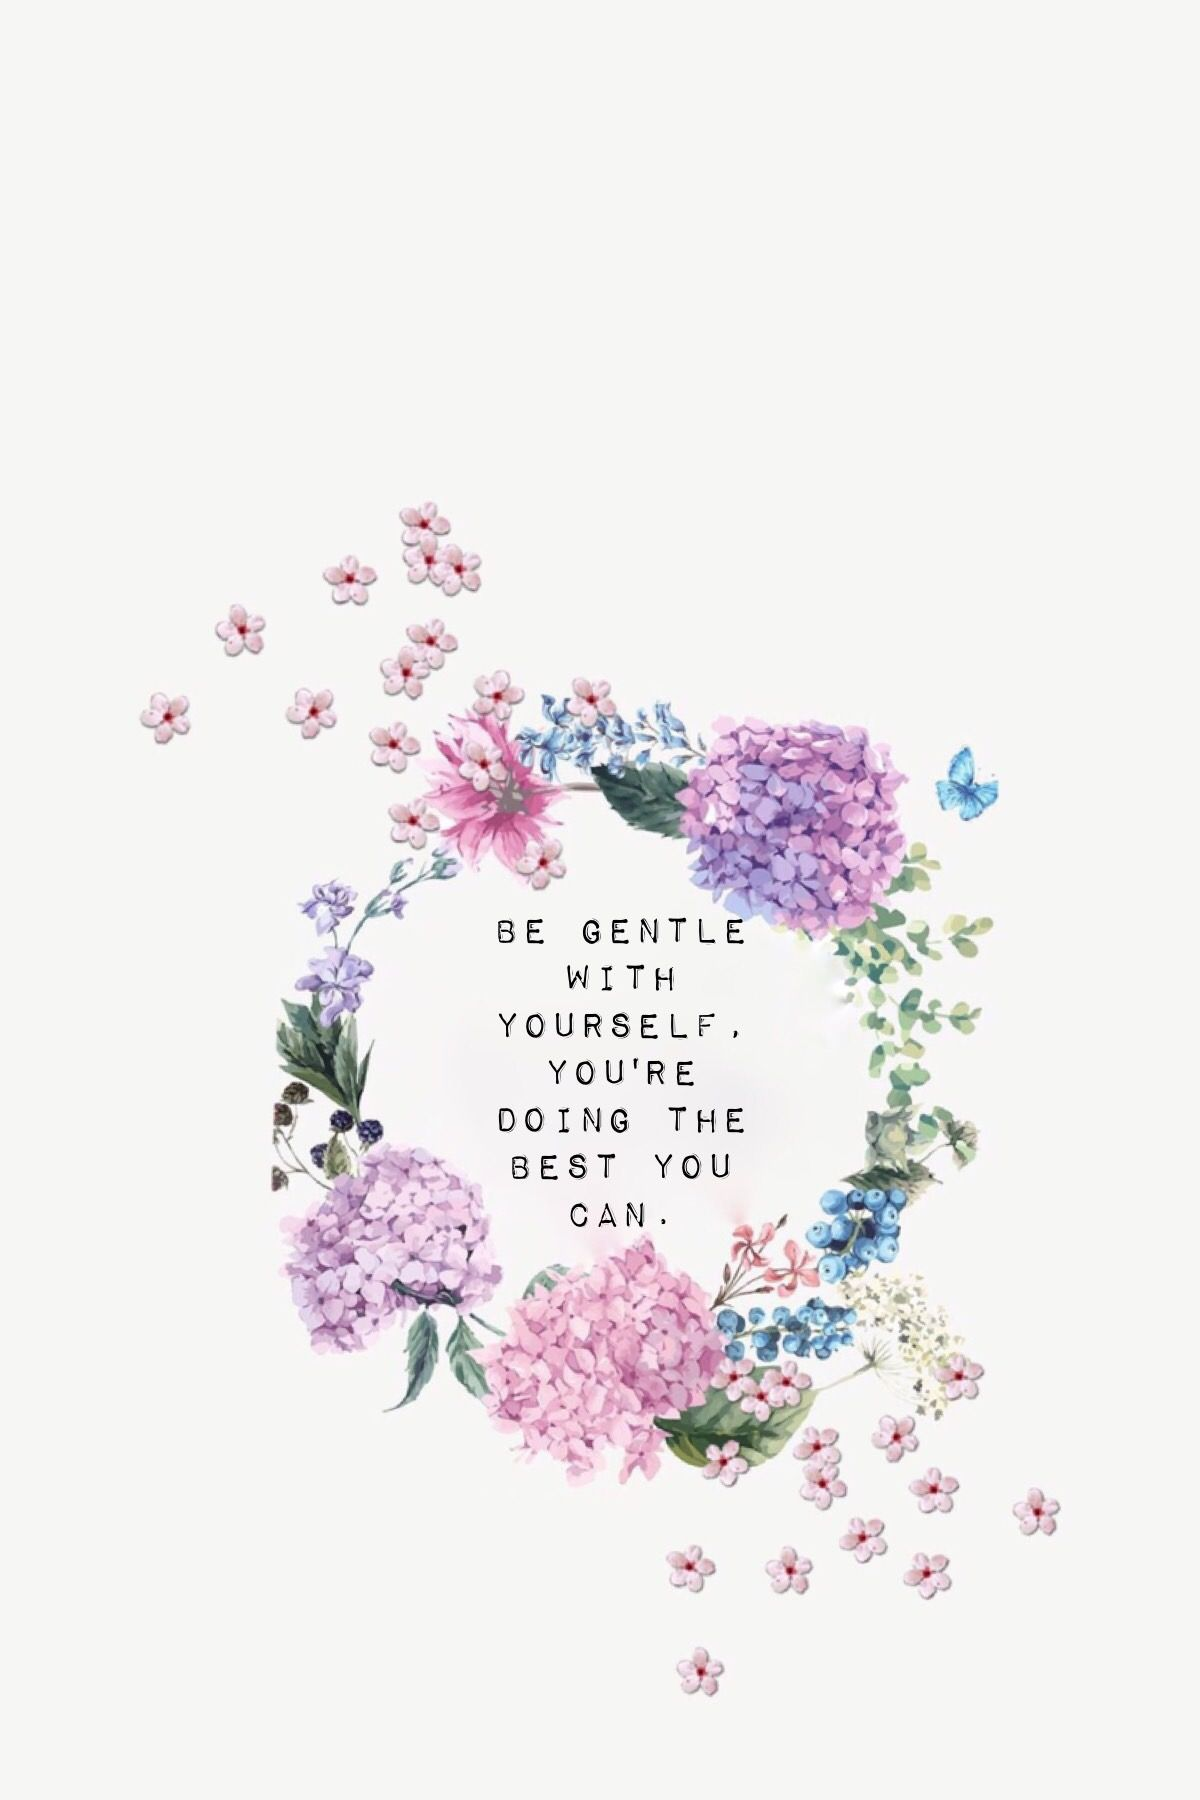 Love yourself, selflove, seltesteem, recovery wallpaper, iPhone background   Motivation ...